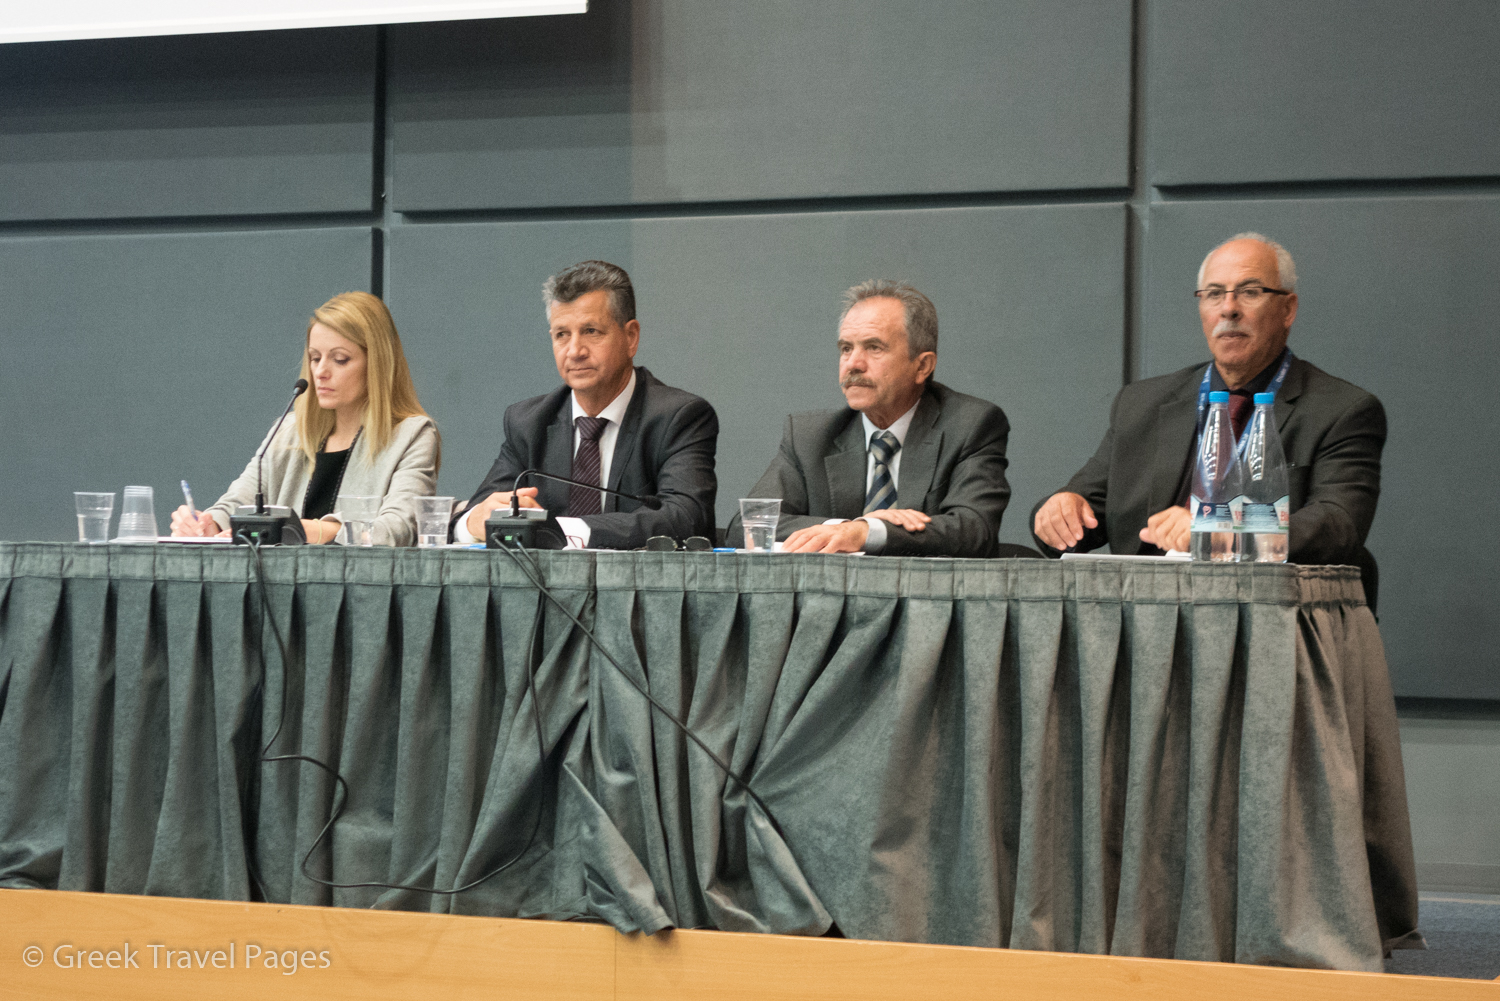 Greek Confederation of Tourist Accommodation Enterprises (SETKE) President Panagiotis Tokouzis (second from left) during the confederation's second congress at the Xenia 2017 hospitality show.